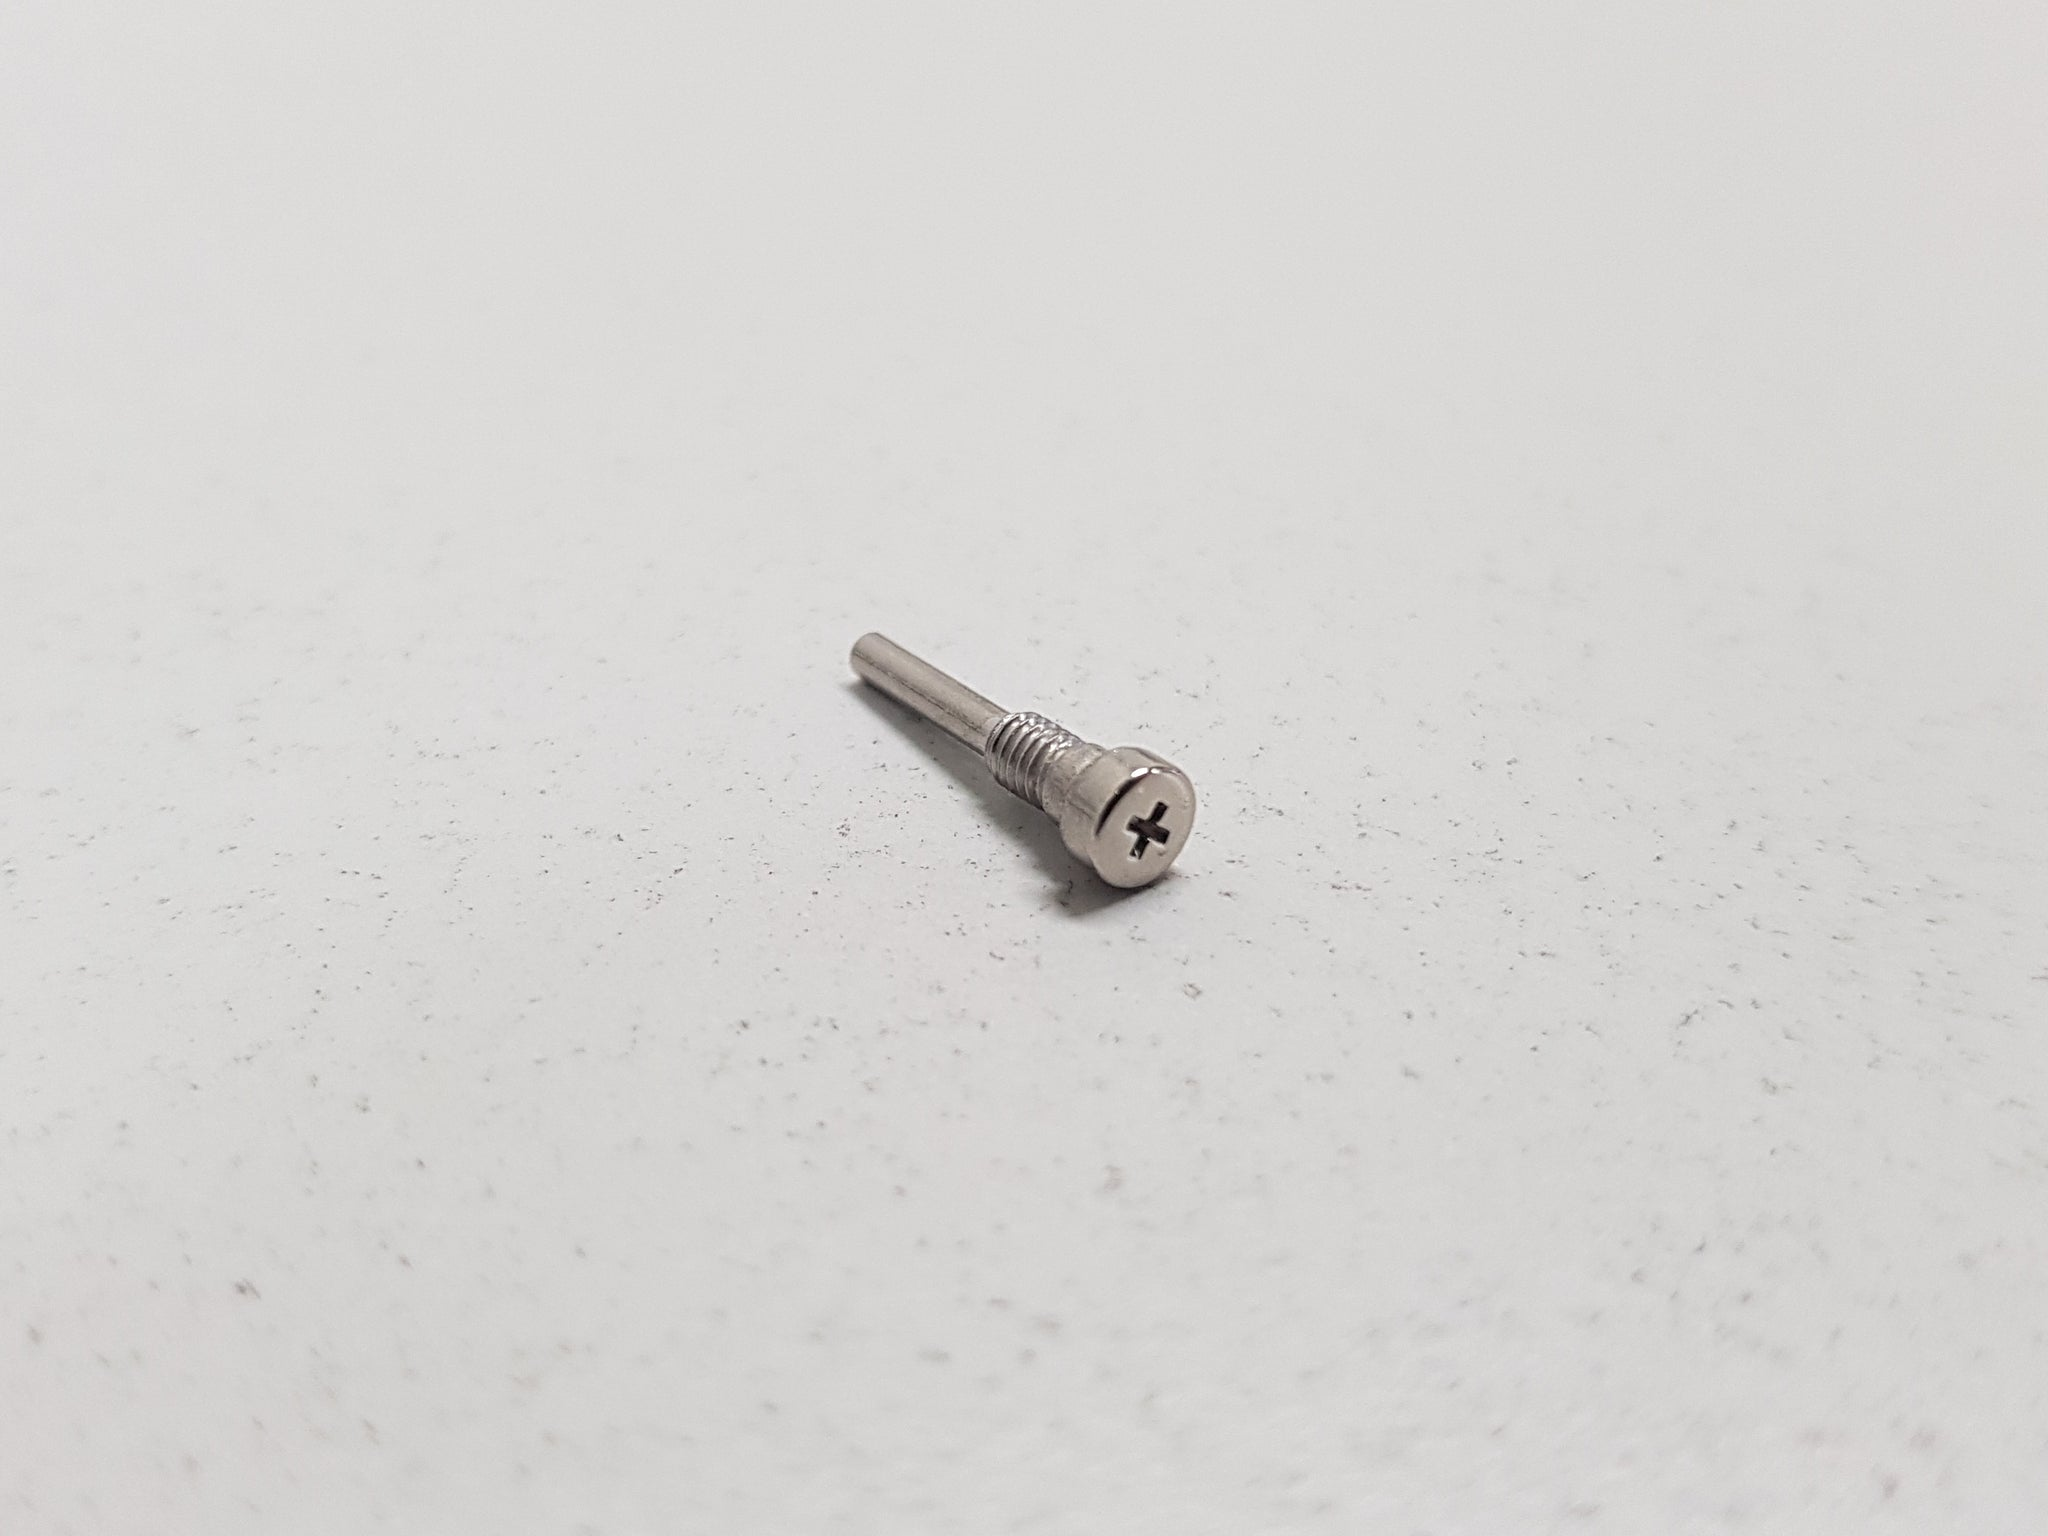 CASIO BAND SCREW (74244320) - G-SHOCK